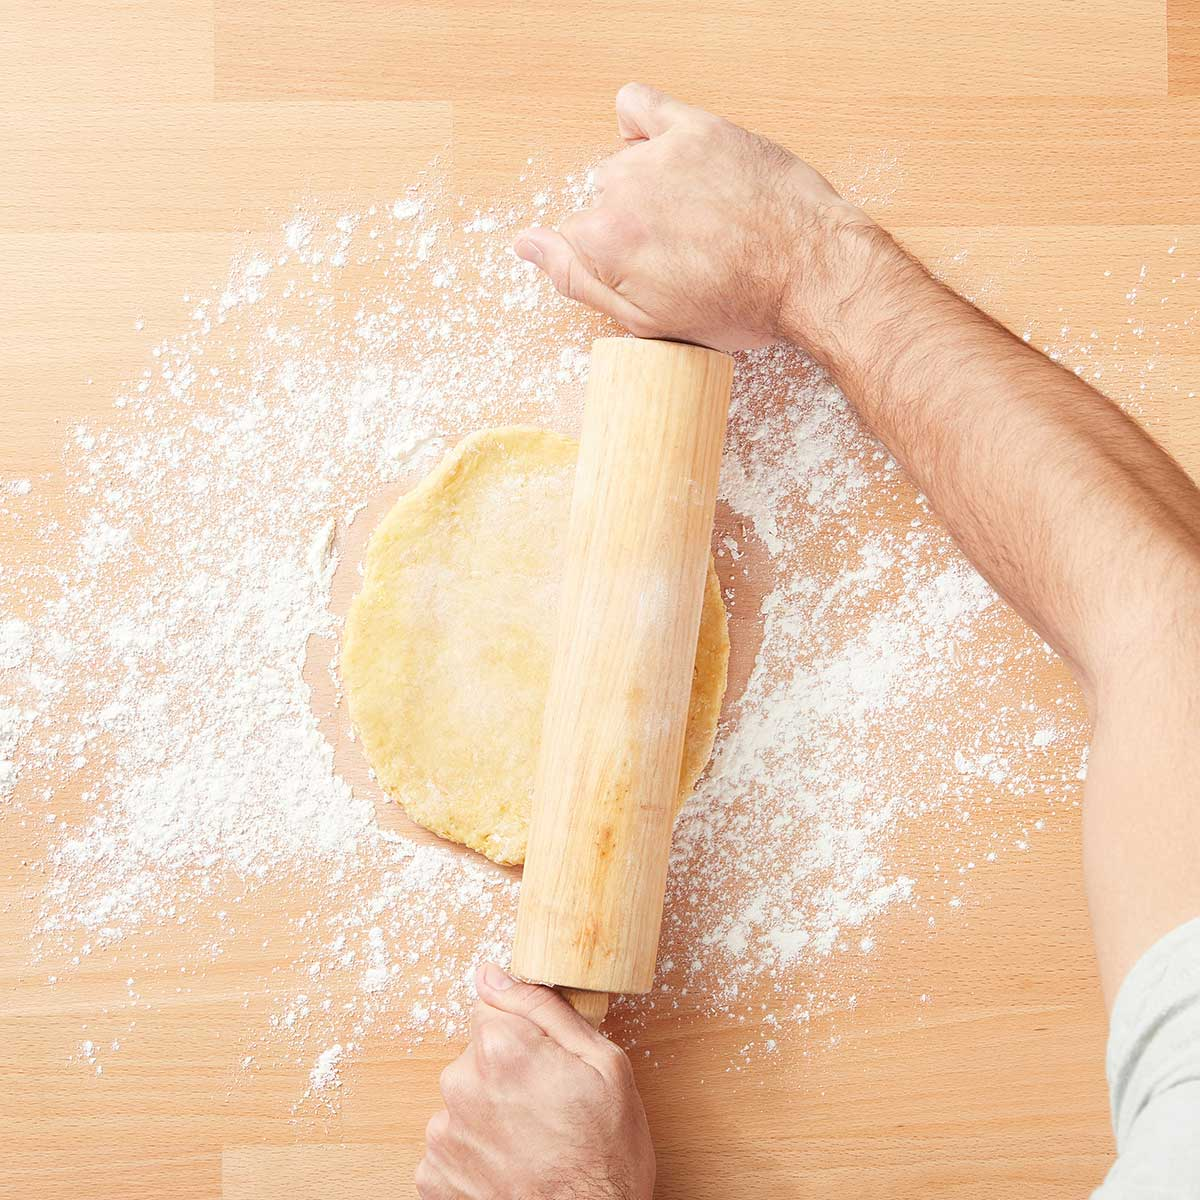 Flatten dough with a rolling pin on a floured surface until the dough is flat and ¼-inch thick.e